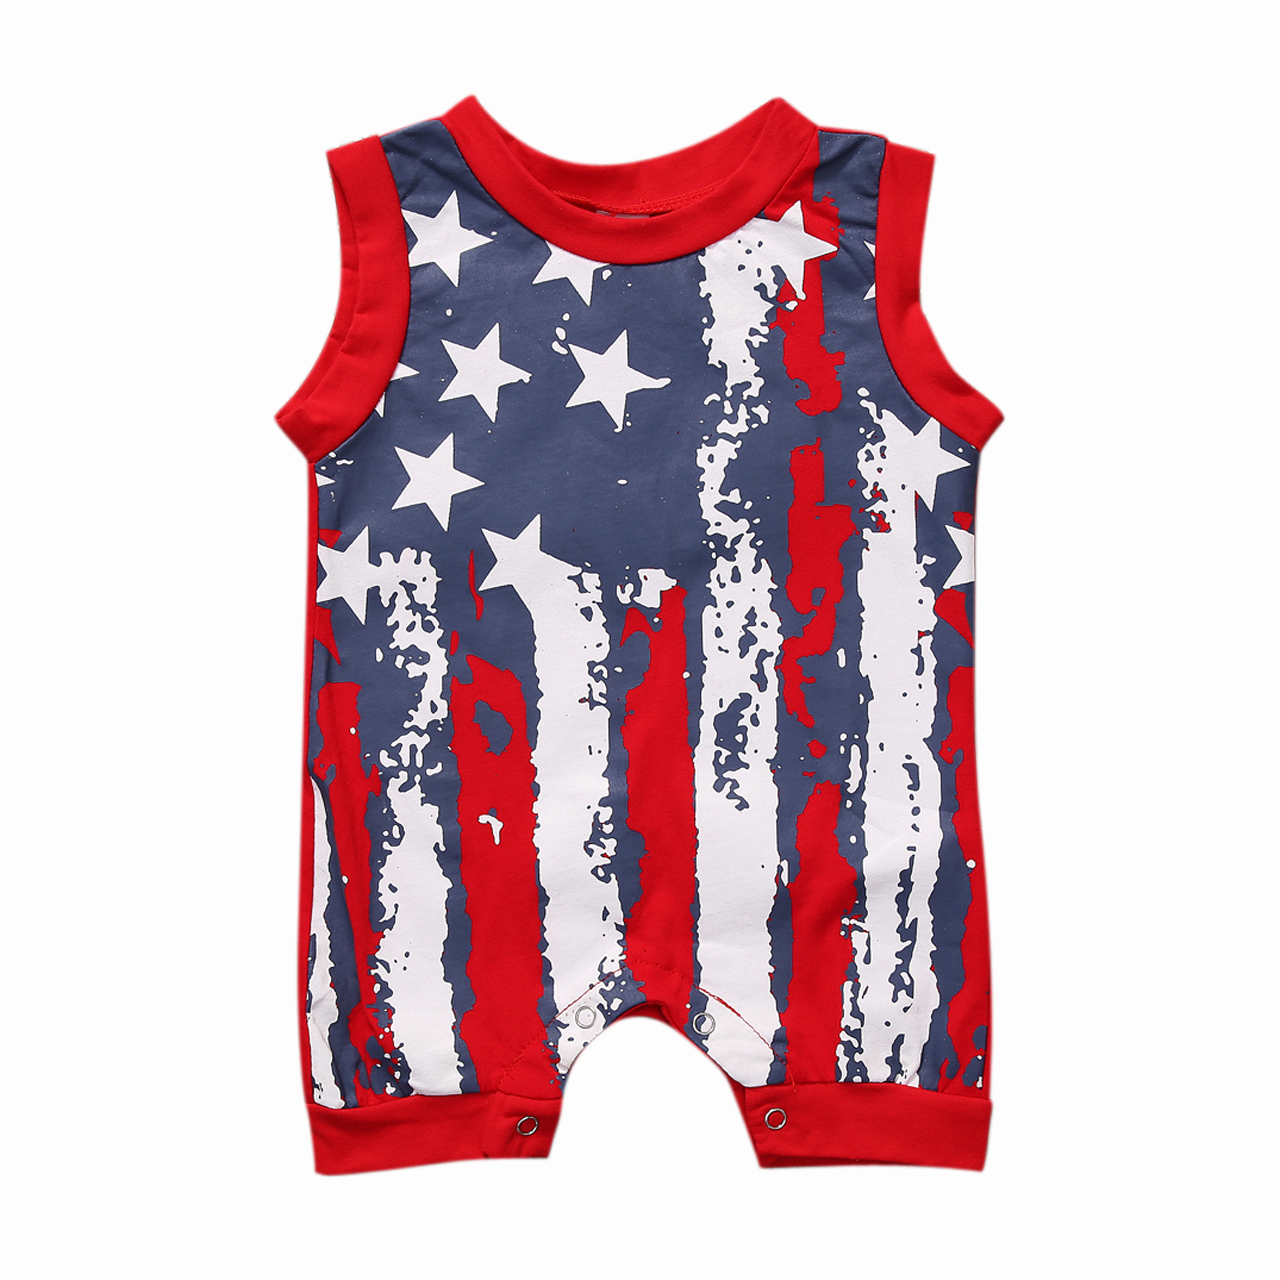 1ddafad8f Baby Boys. Summer Adidas Clothing Set 2Pcs. $32.99 $28.99. Add to Wishlist  loading